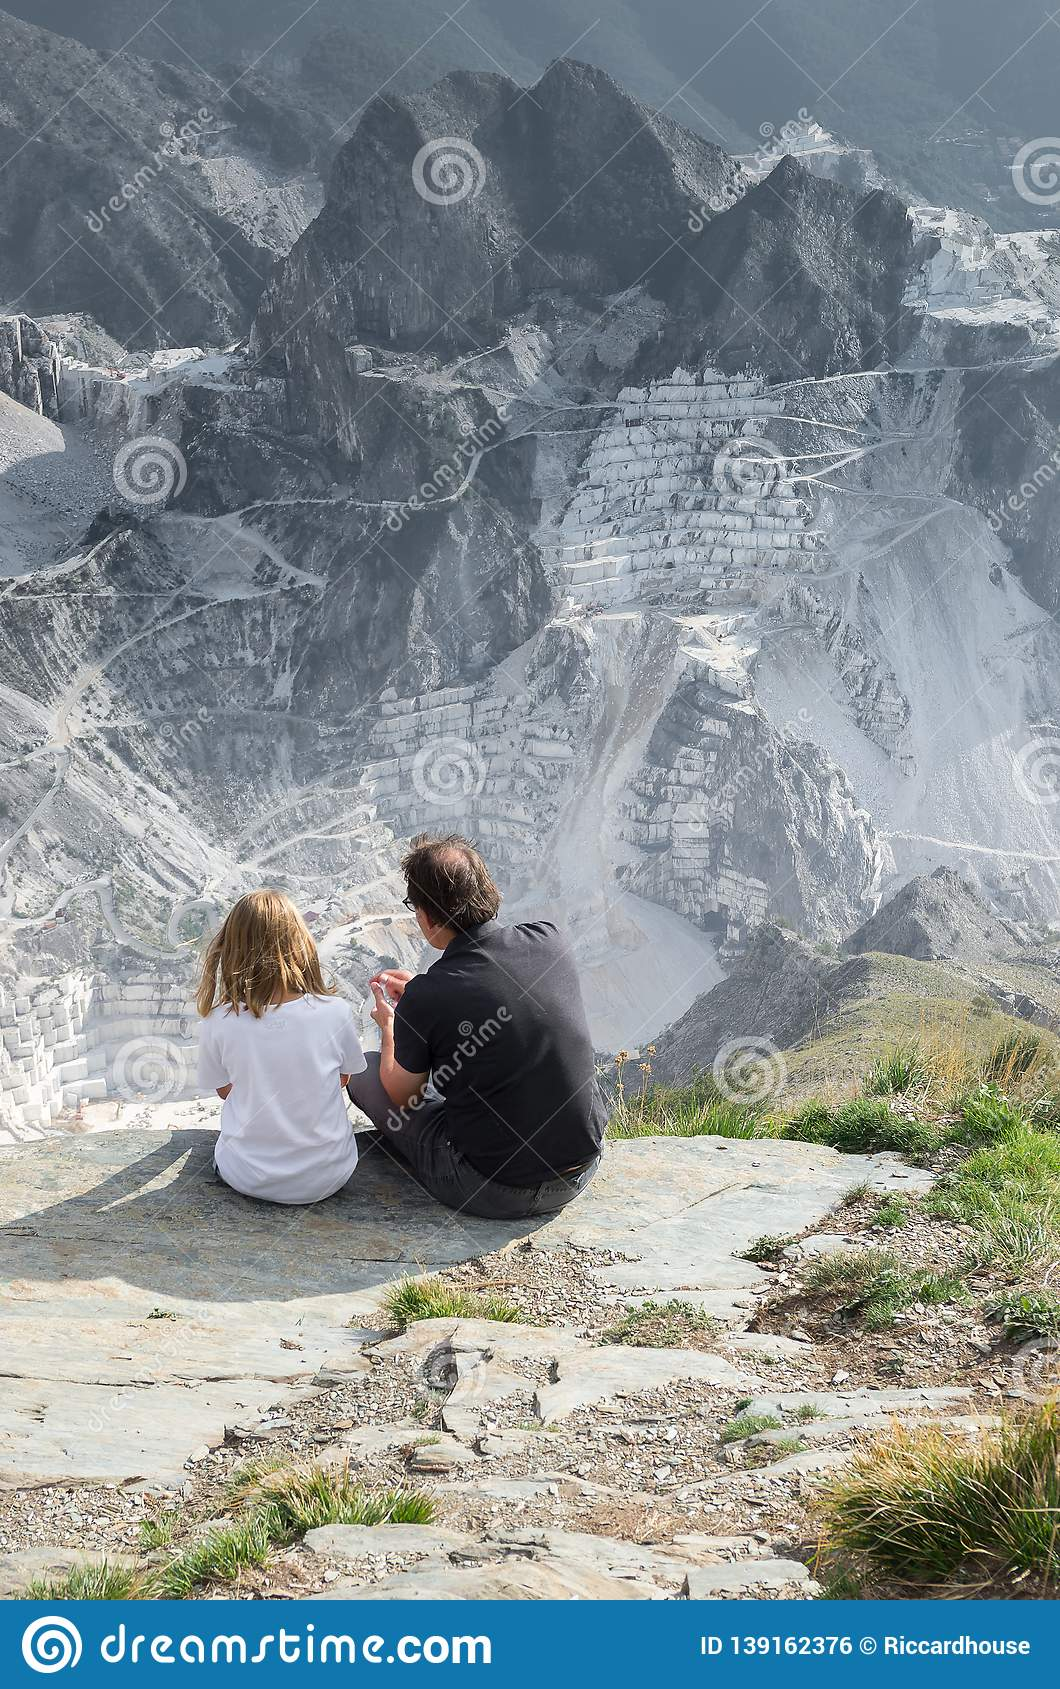 Famous Italian marble quarries, Carrara